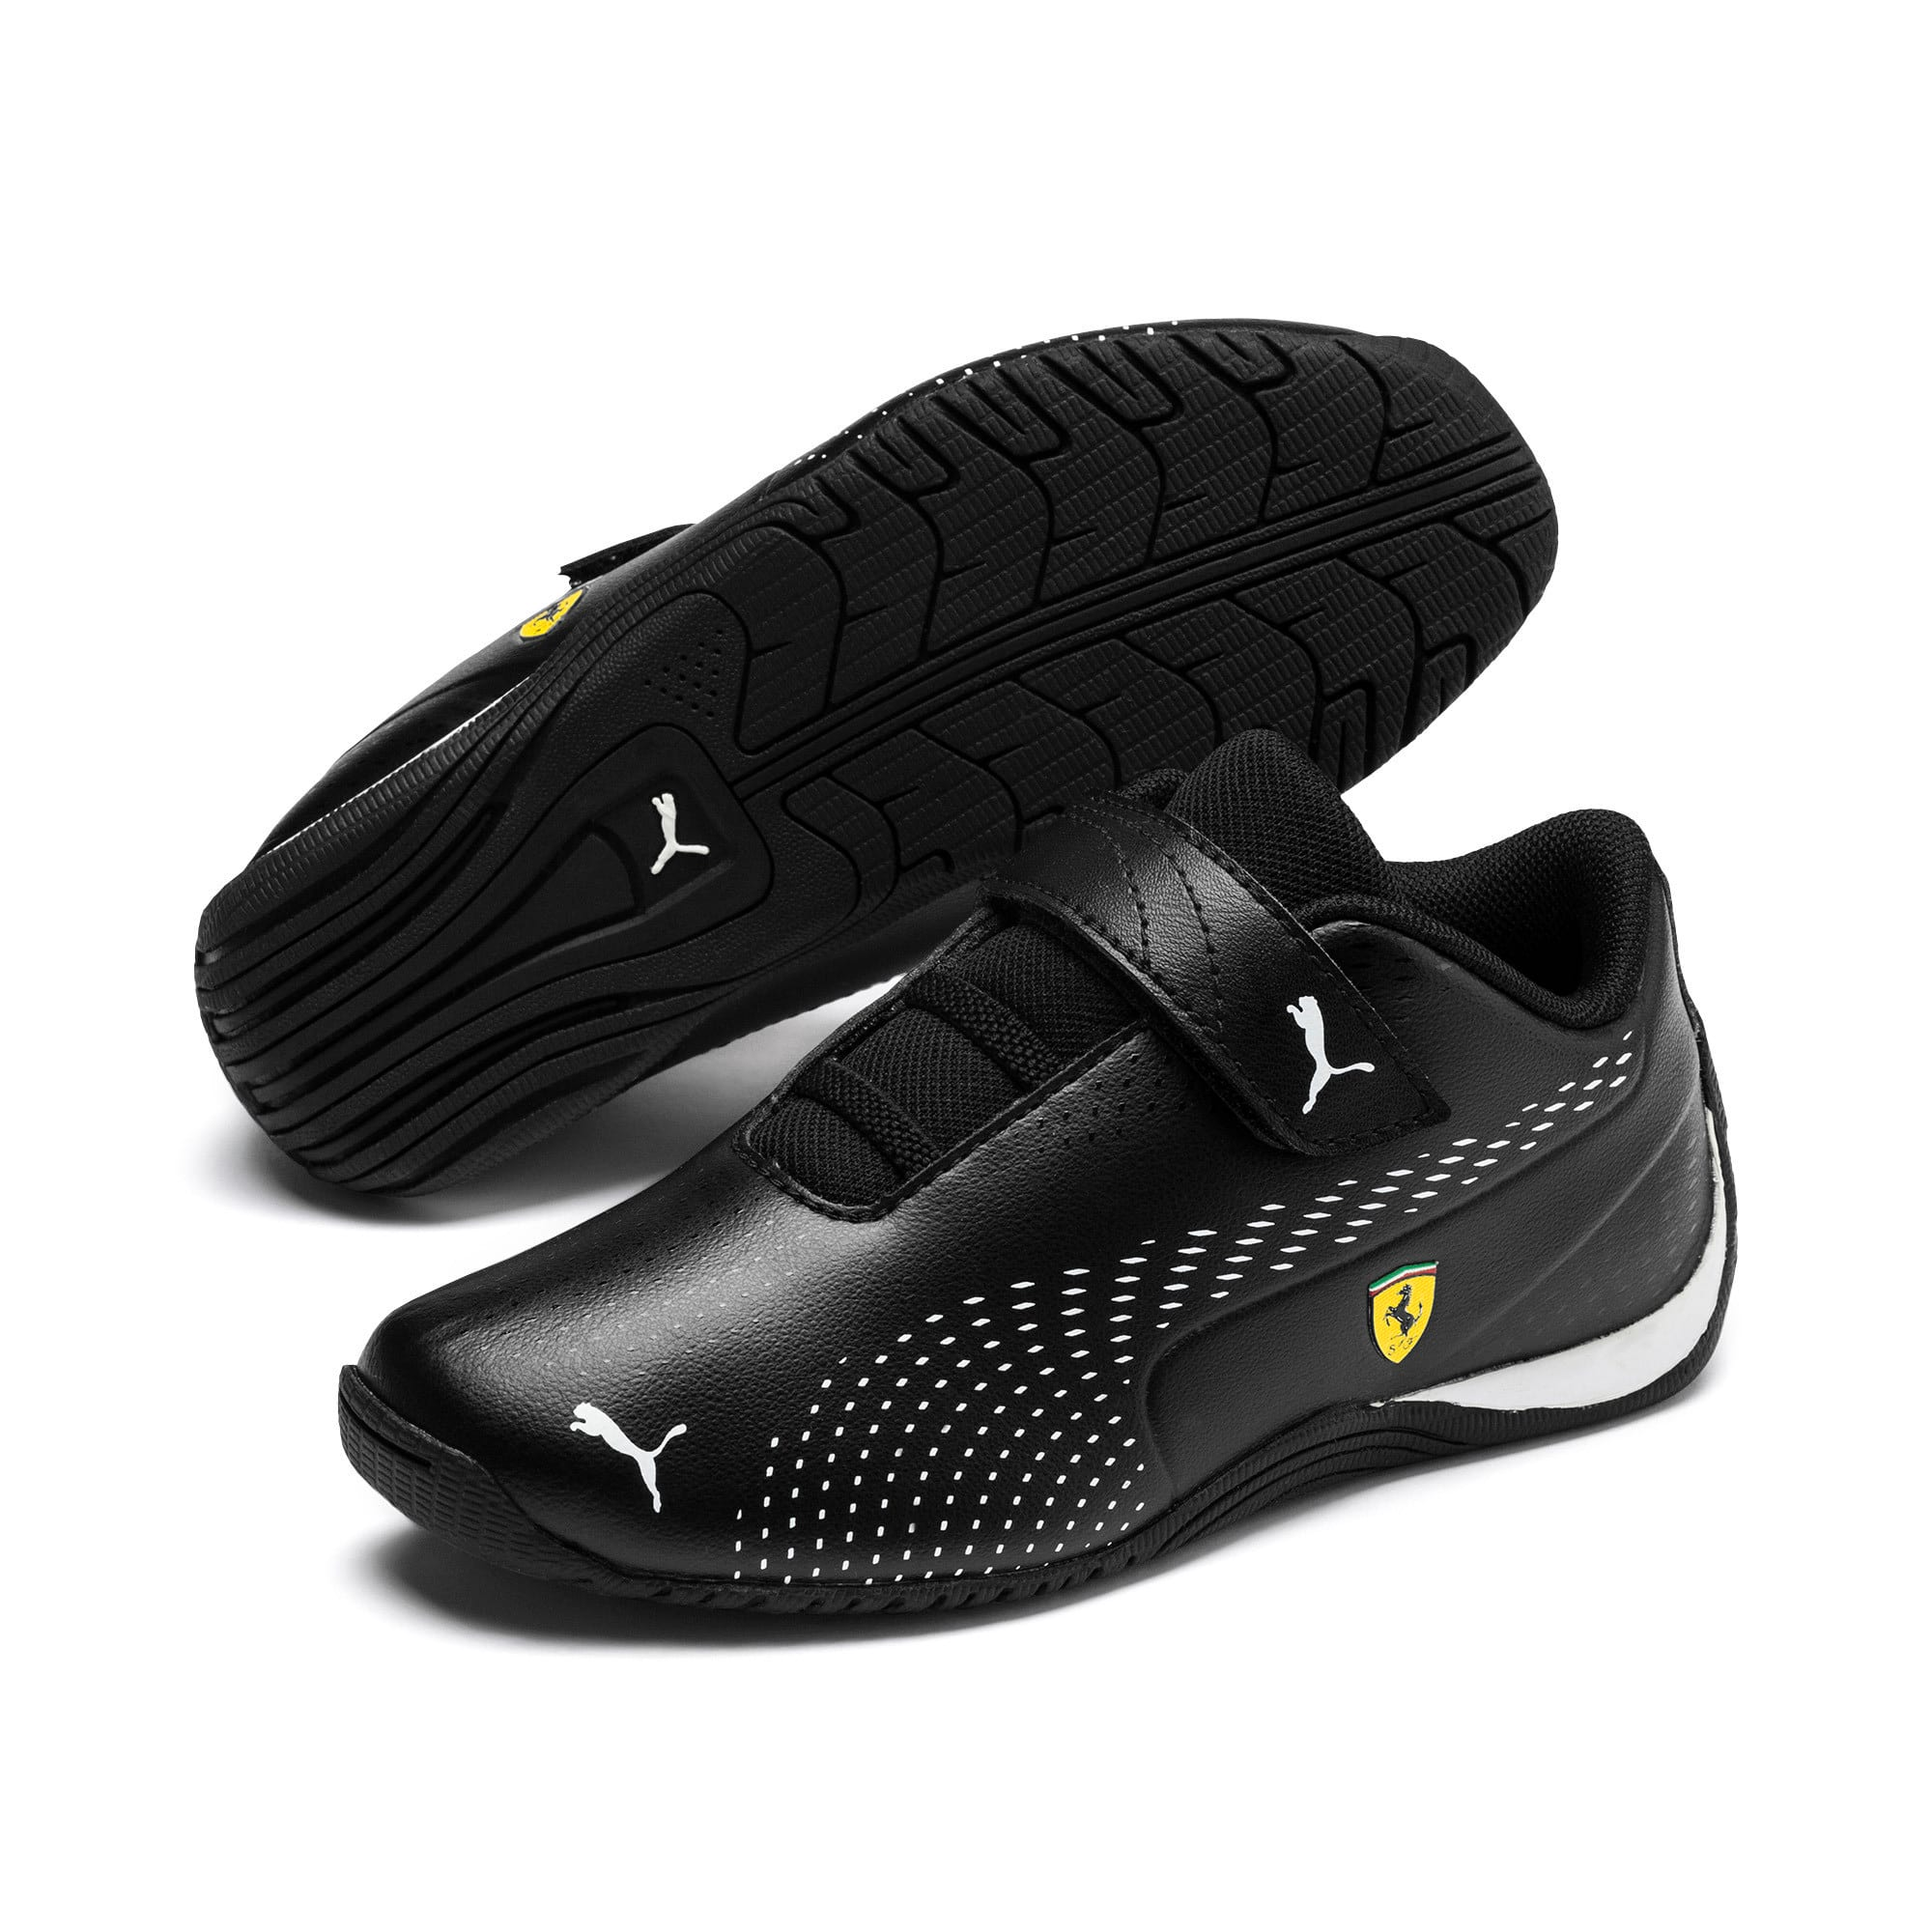 Thumbnail 2 of Ferrari Drift Cat 5 Ultra II V Kids' Trainers, Puma Black-Puma White, medium